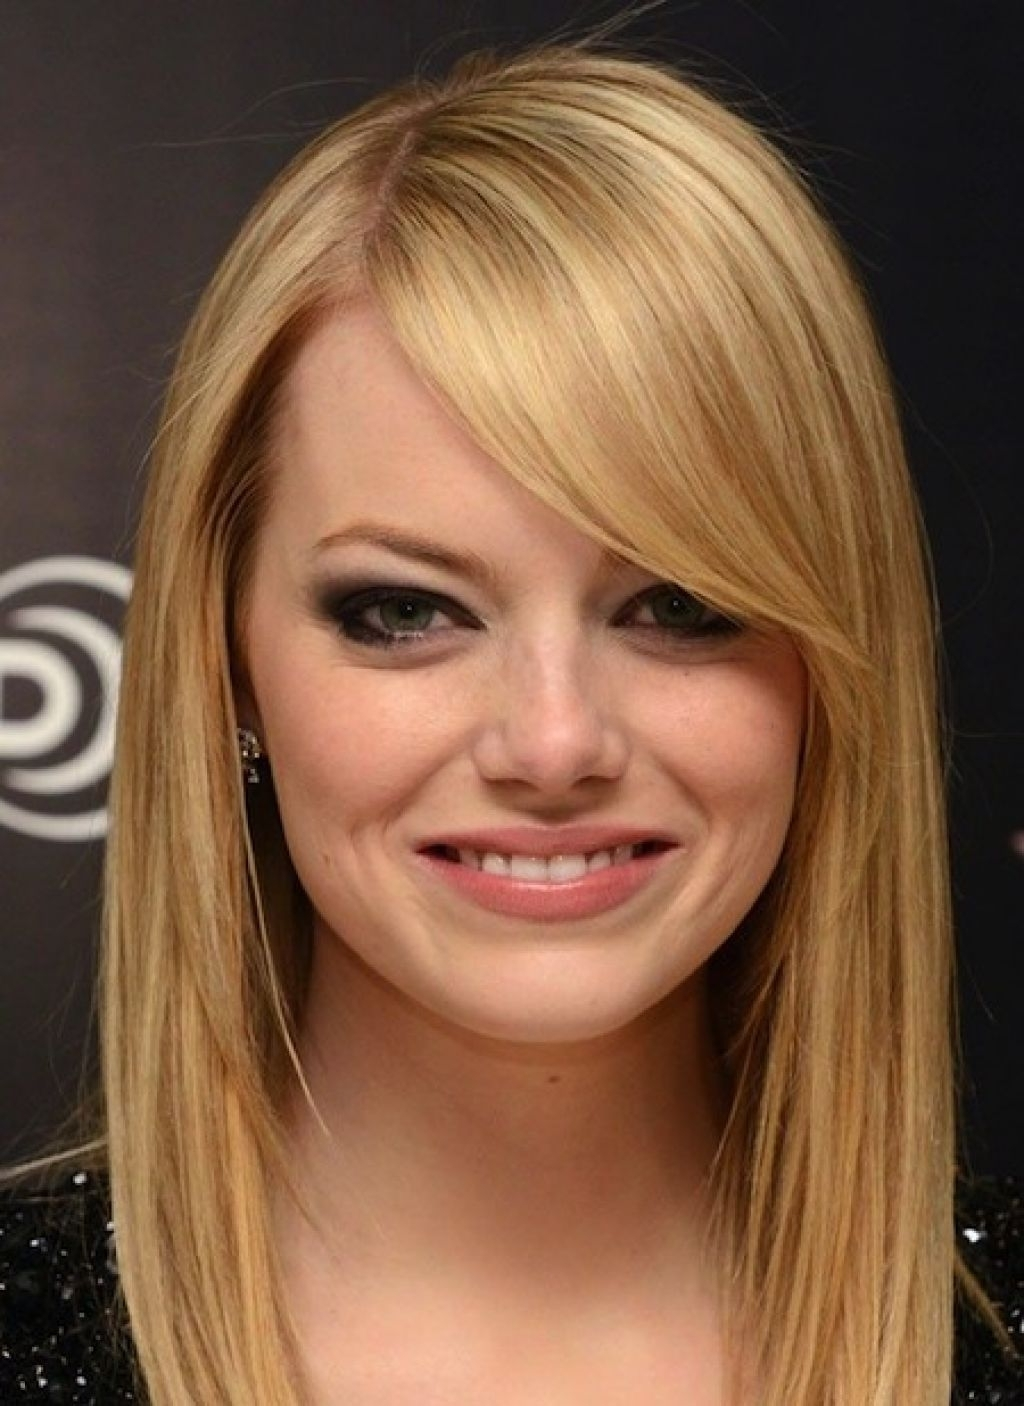 Long Bob Haircut With Layers Straight Blonde Hair Swept Bangs In 2017 Blonde Lob Hairstyles With Sweeping Bangs (View 3 of 20)